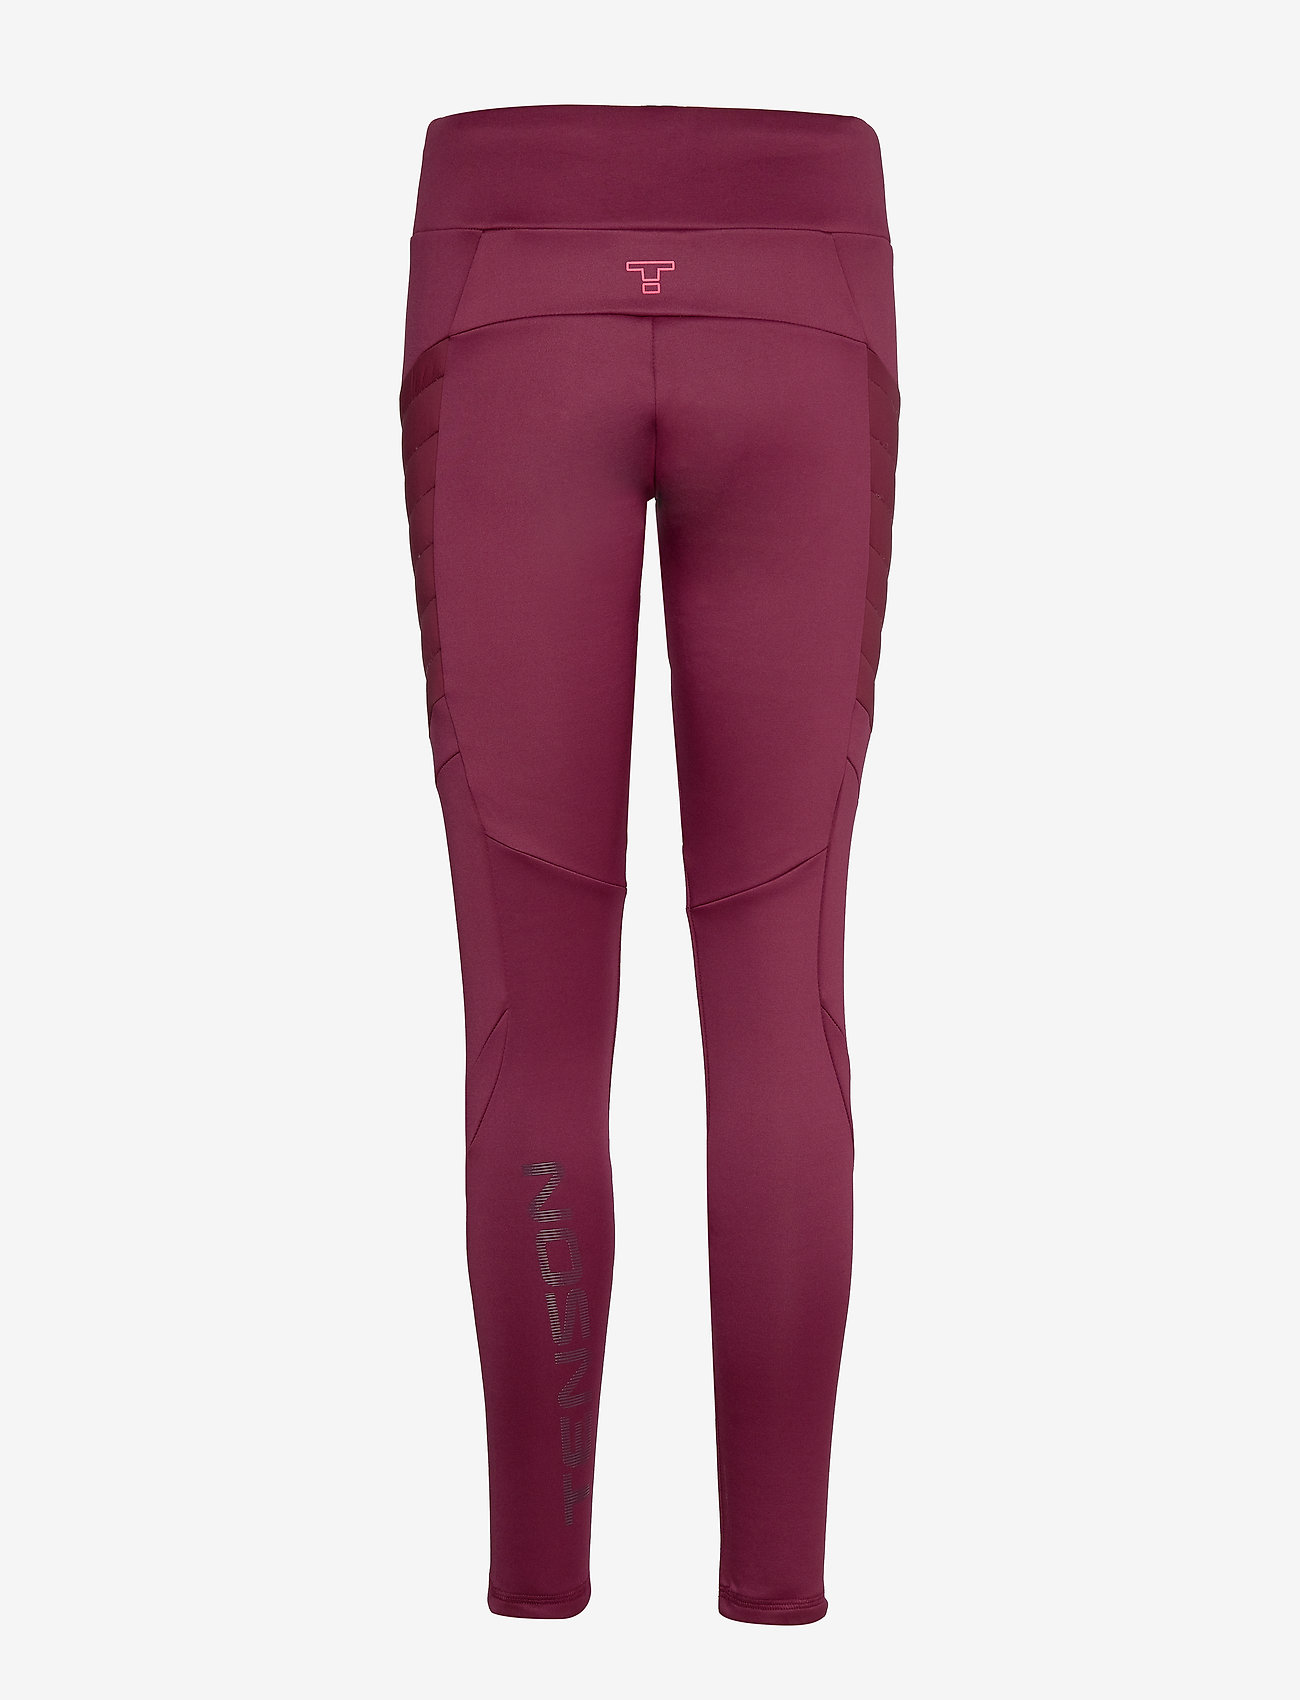 Therma Pants (Bourdeaux) - Tenson SiQAMa